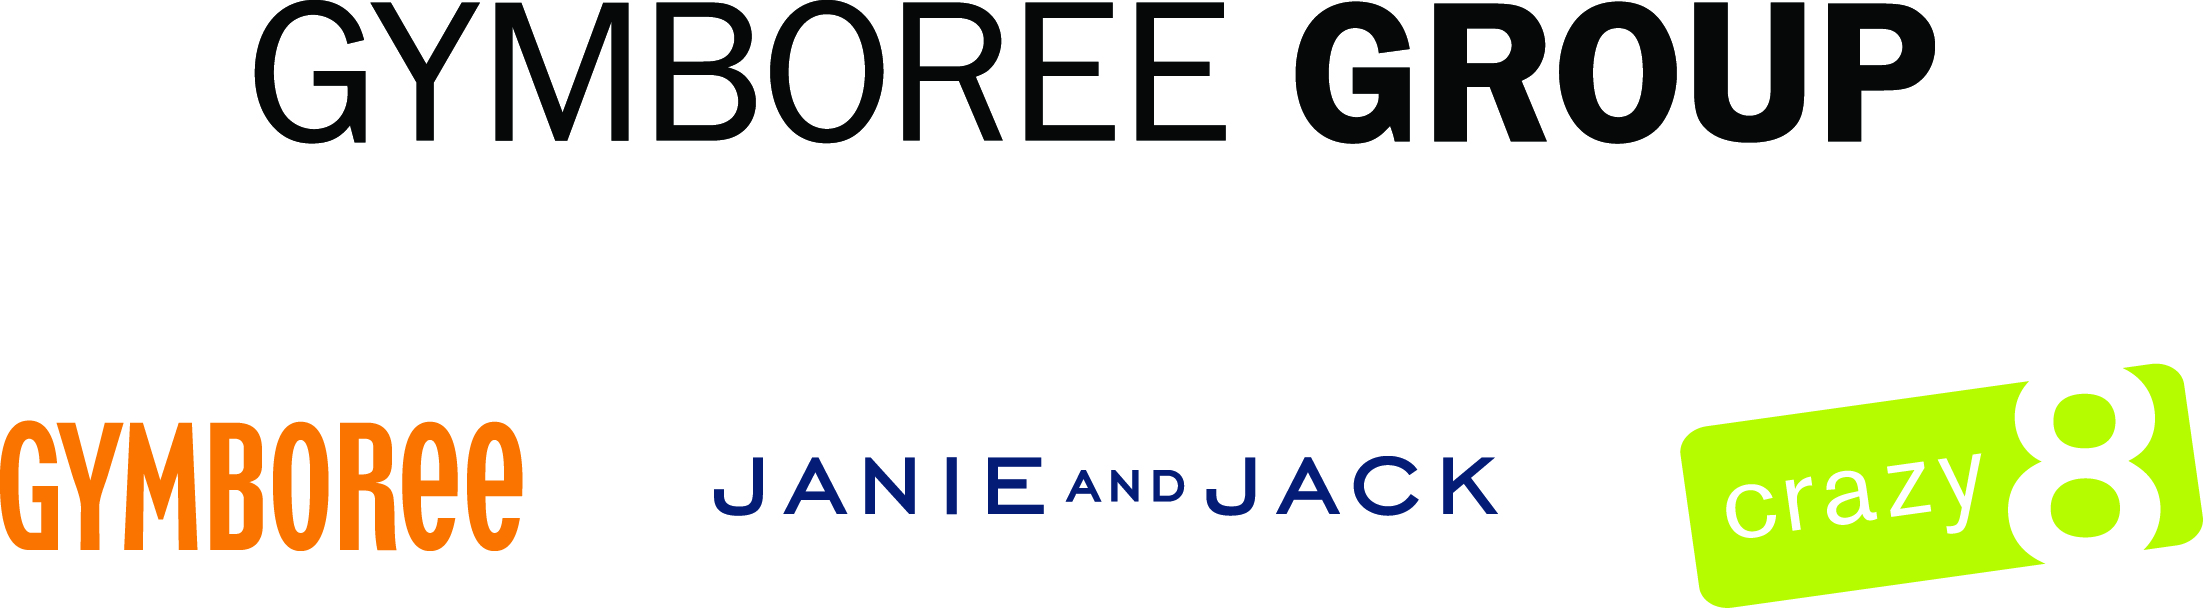 Gymboree Group